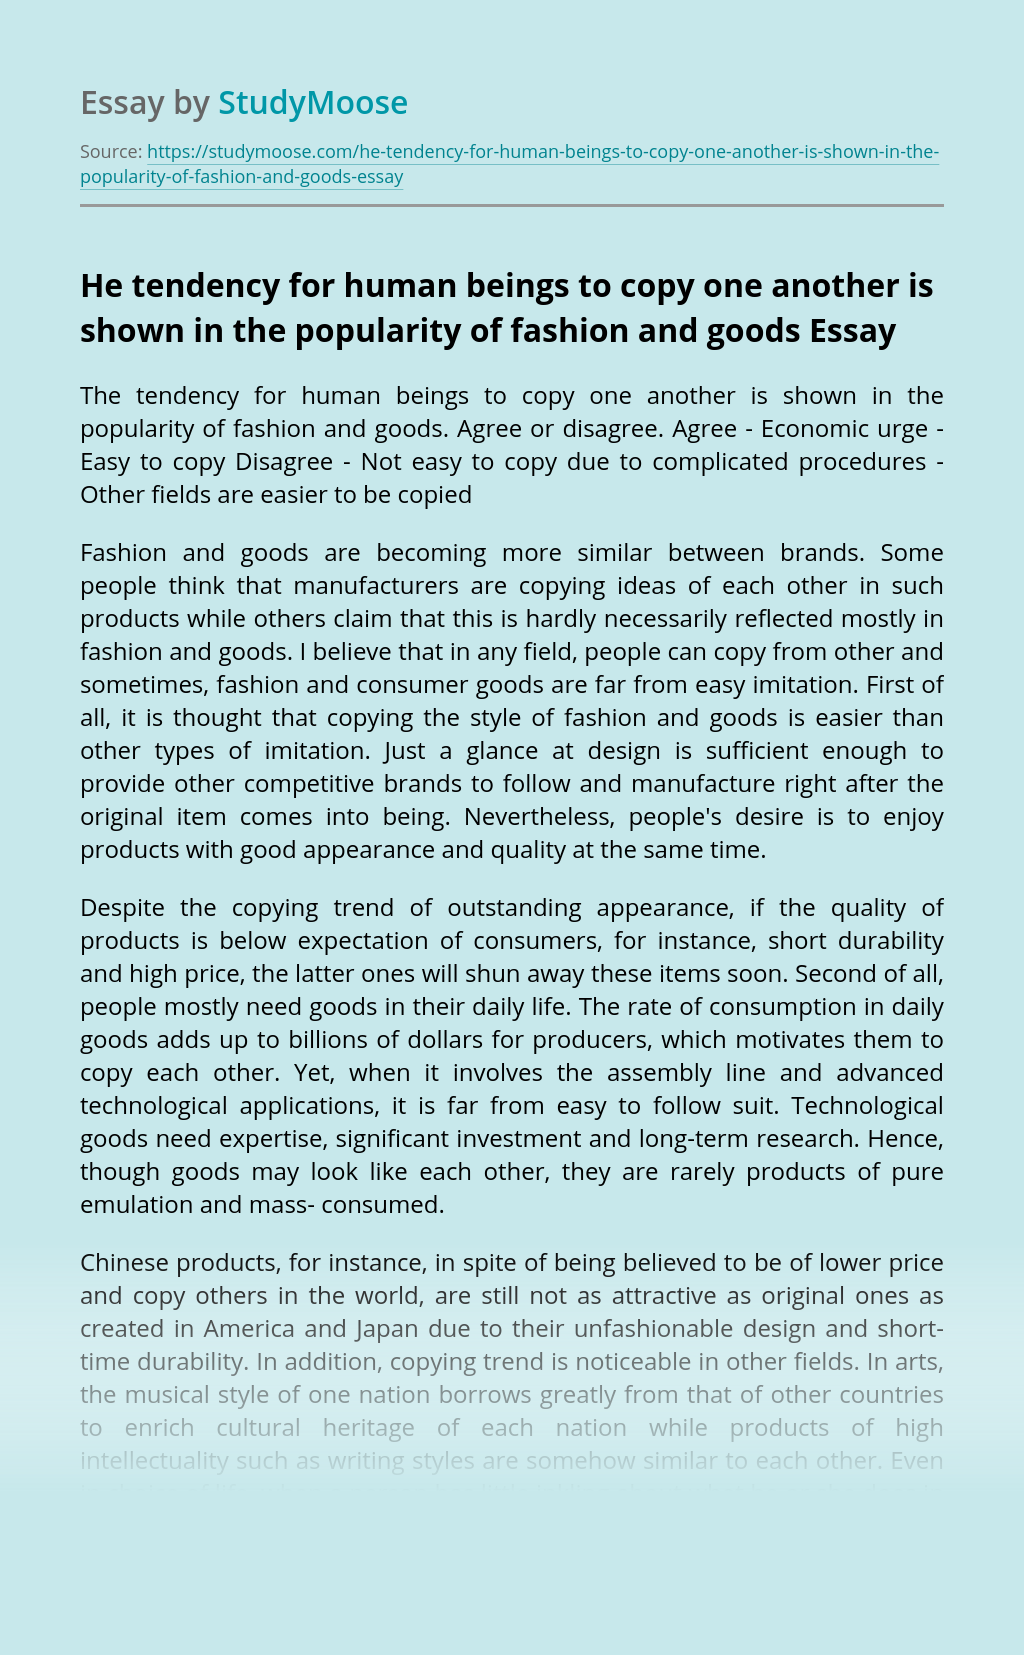 He tendency for human beings to copy one another is shown in the popularity of fashion and goods